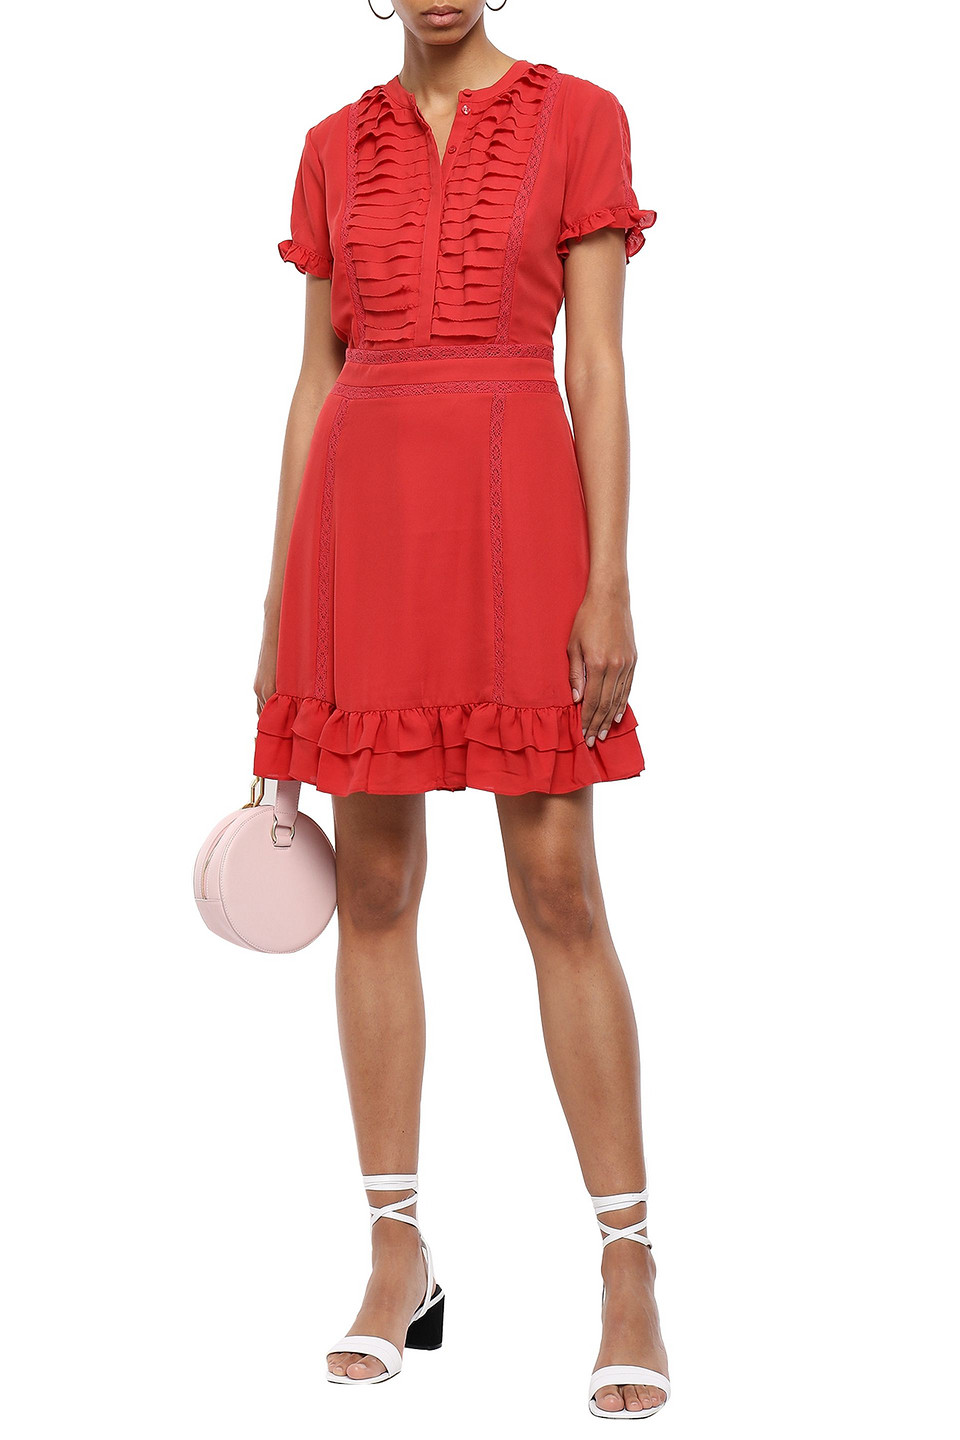 Rebecca Minkoff | Rebecca Minkoff Woman Pleated Lace-trimmed Crepe Mini Dress Brick | Clouty